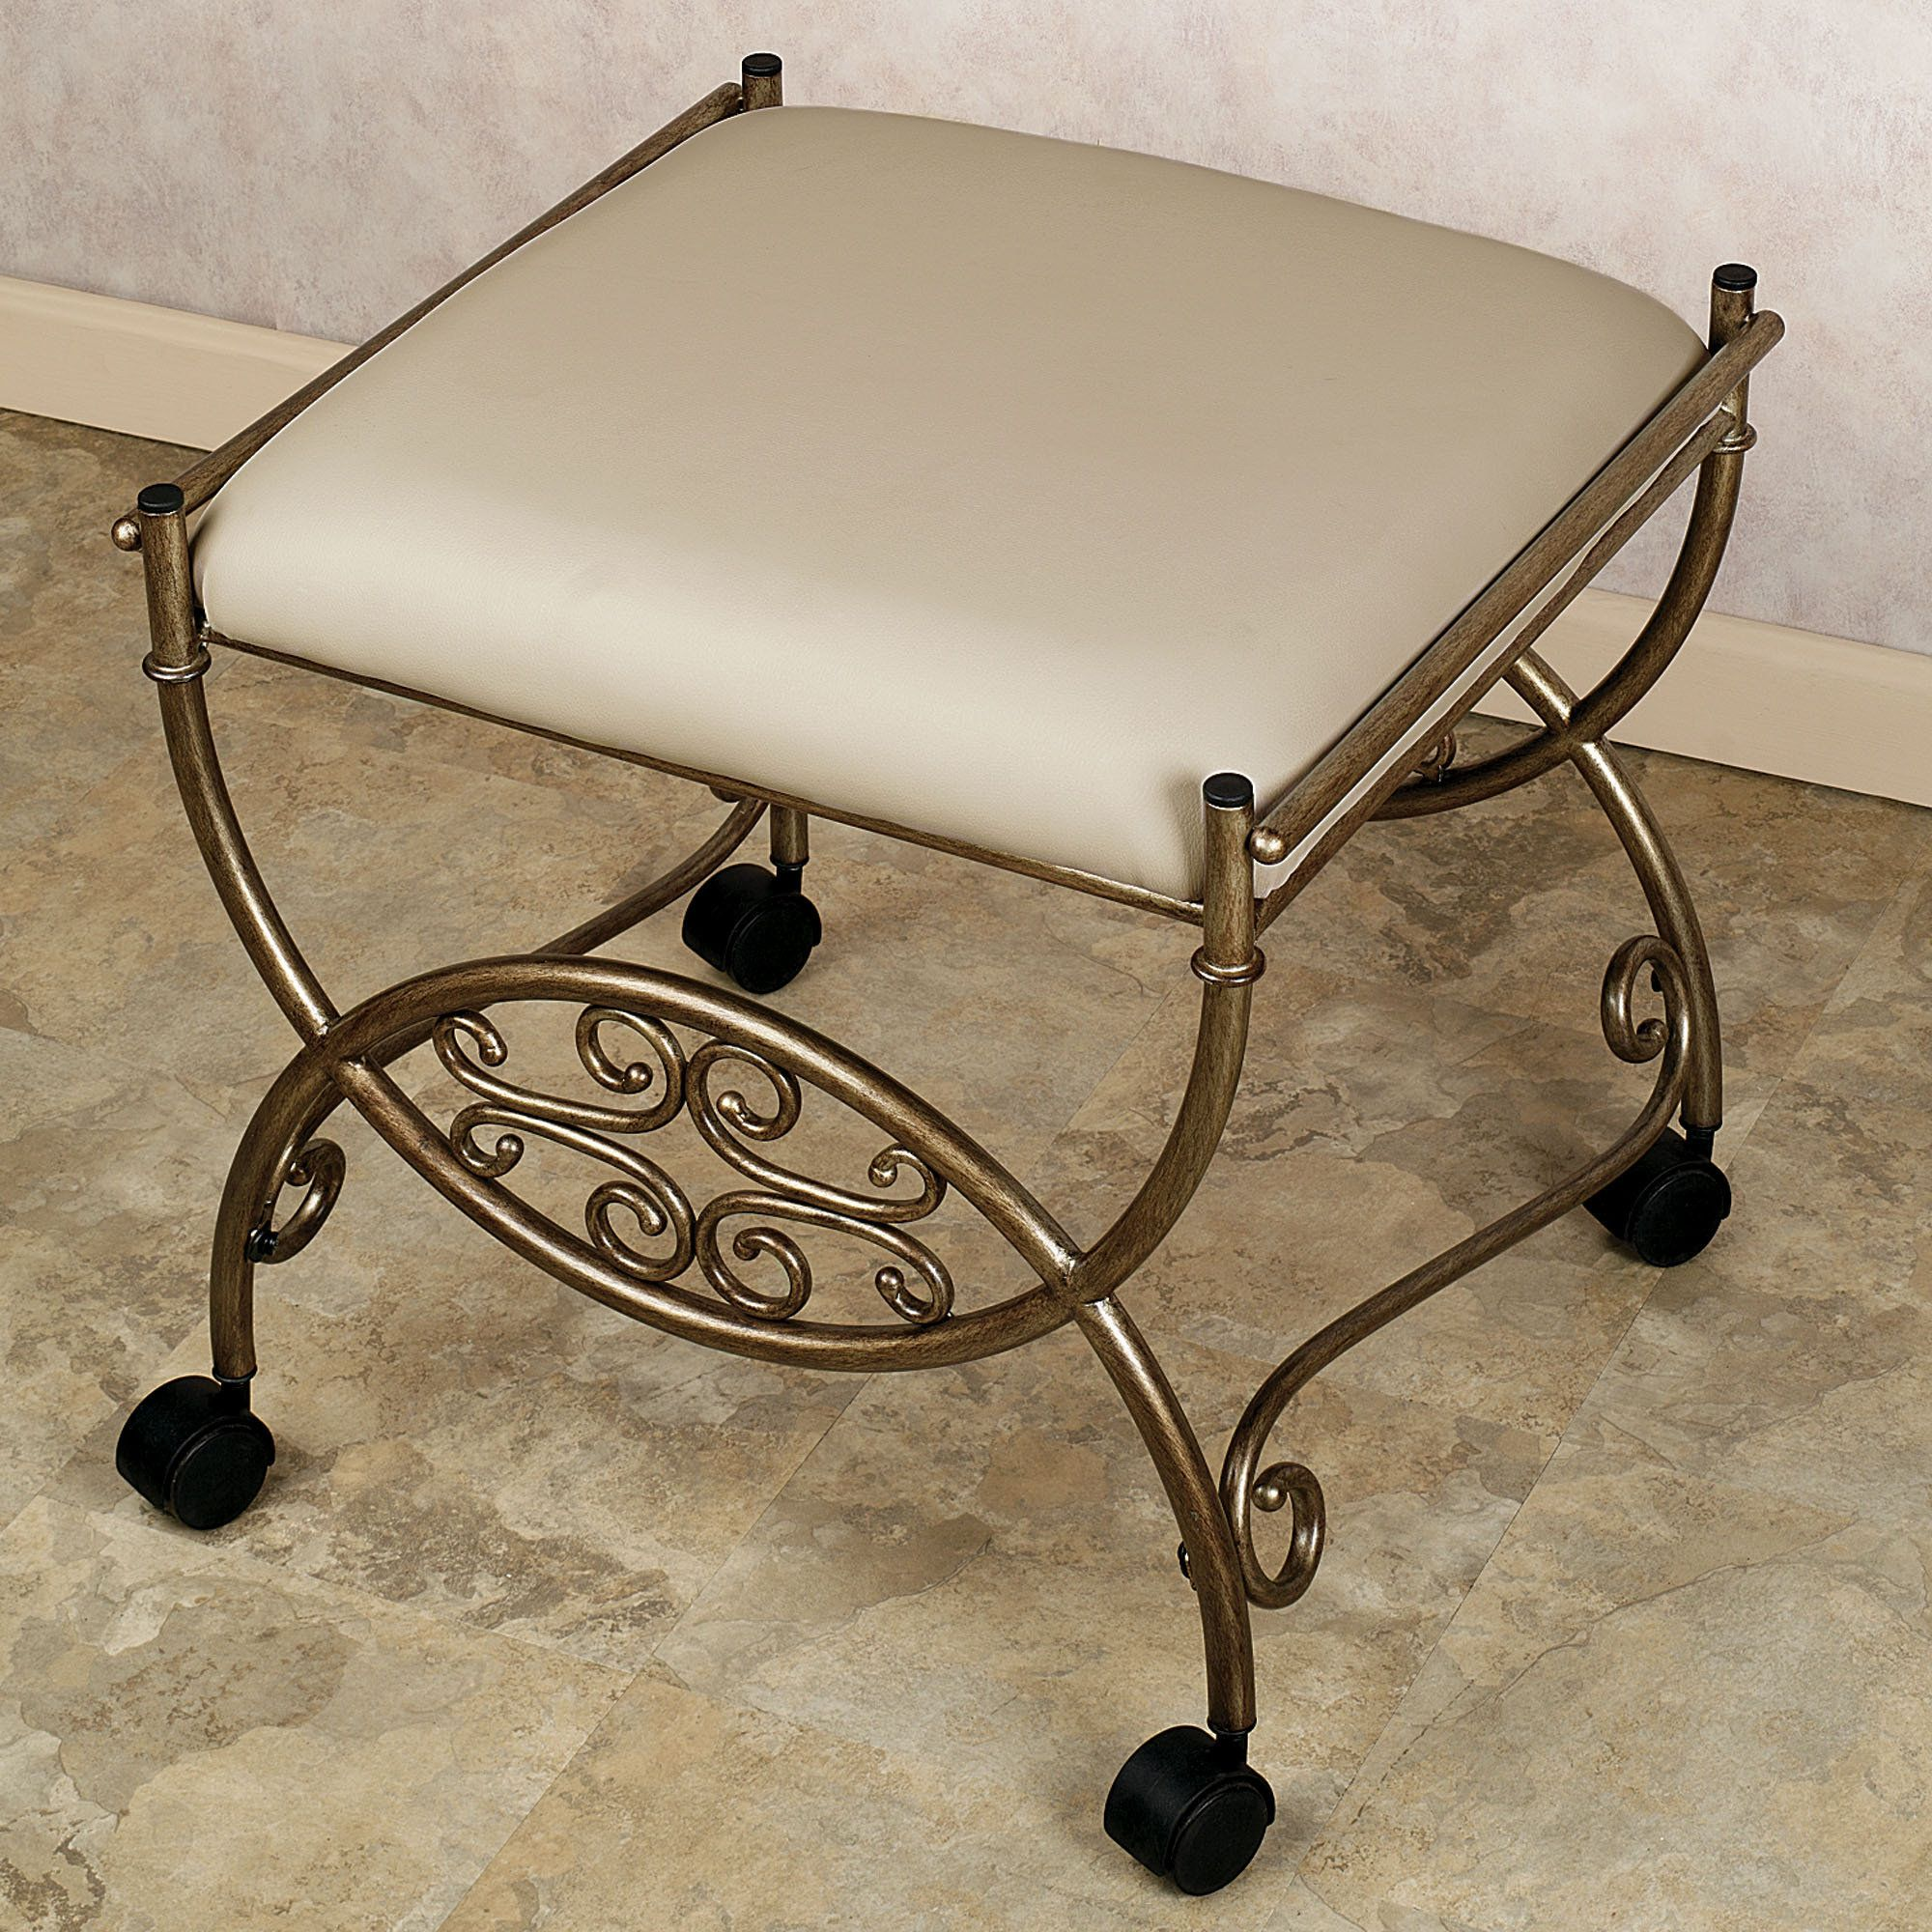 Vanity Chairs For Bathroom Wheels This One May Be A Bit Too Fancy But